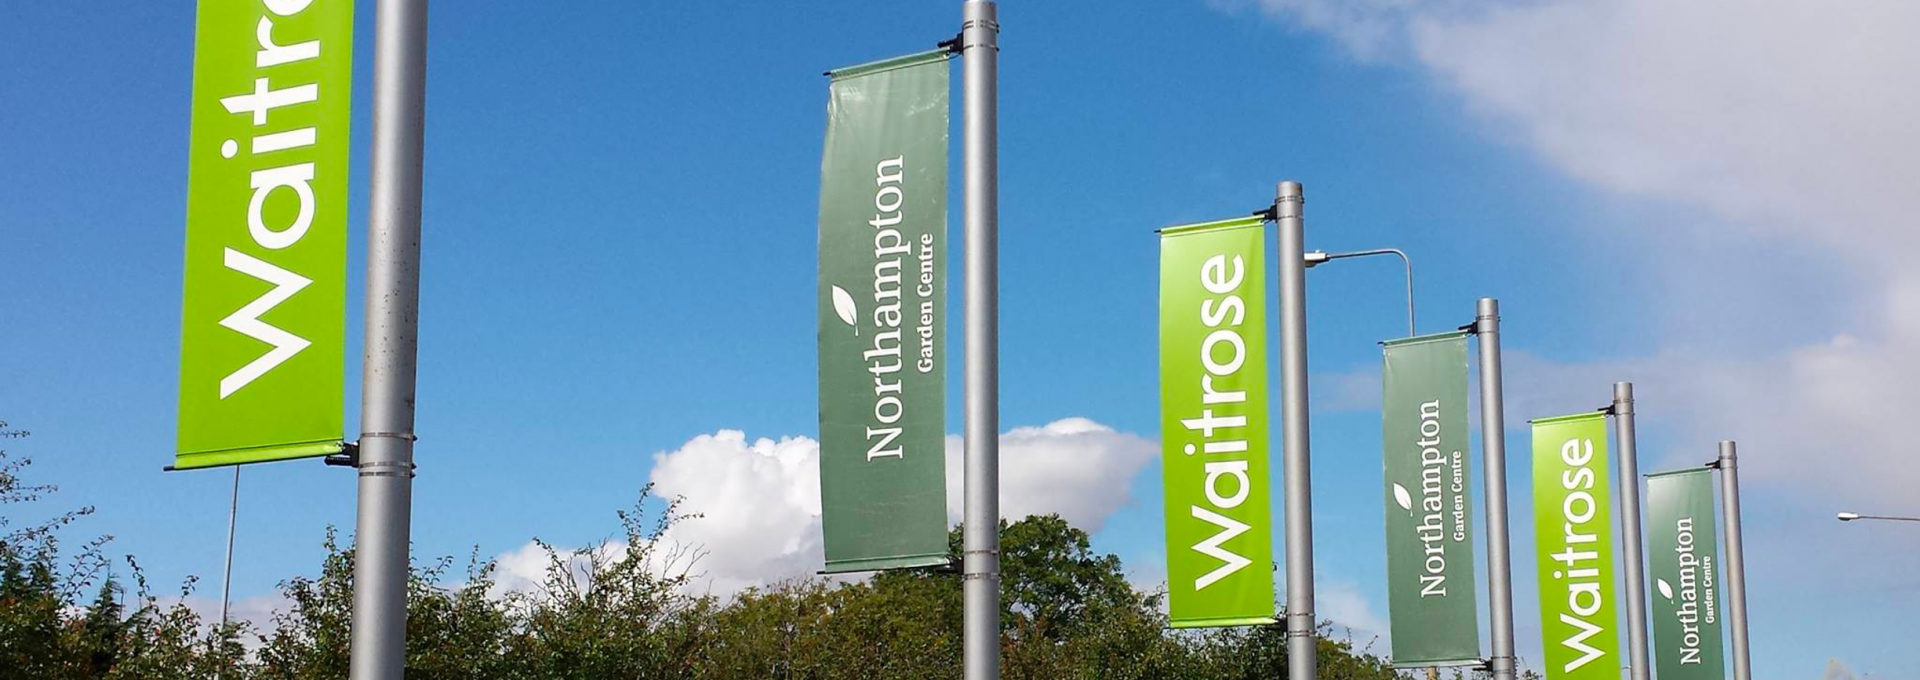 Lampost Banners